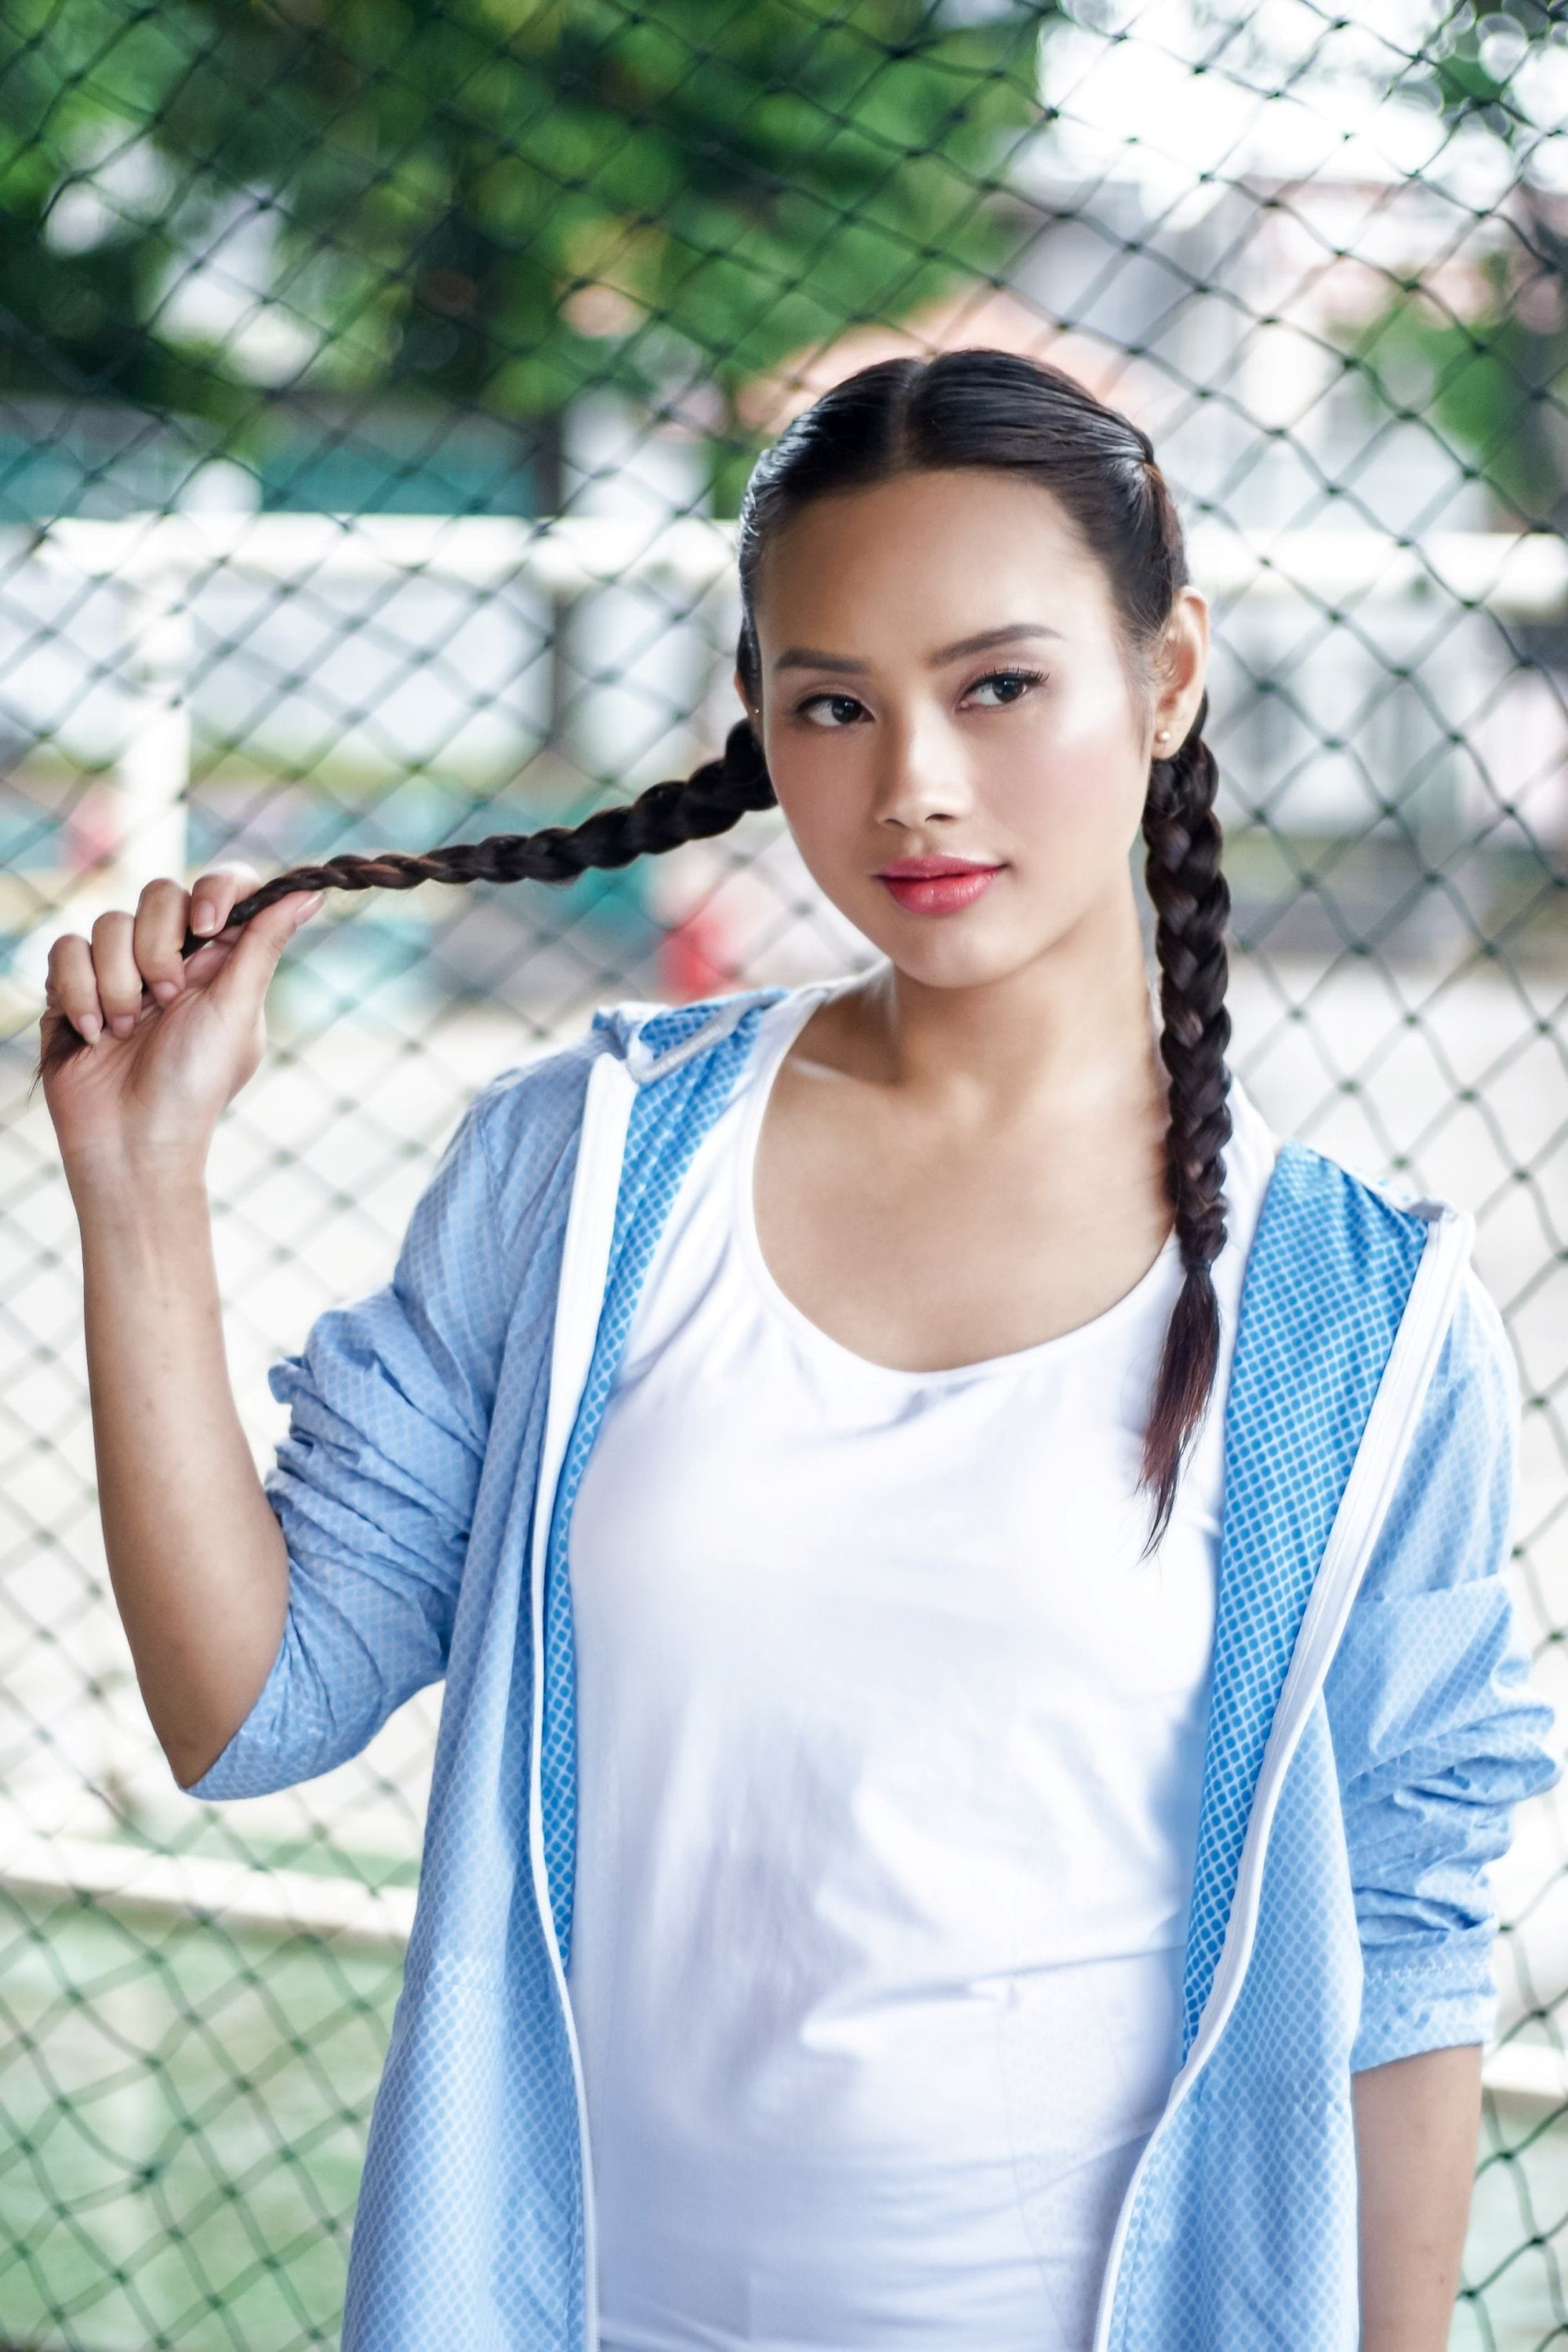 International Women's Day: Asian woman with long black hair in boxer braid wearing a sporty outfit outdoors